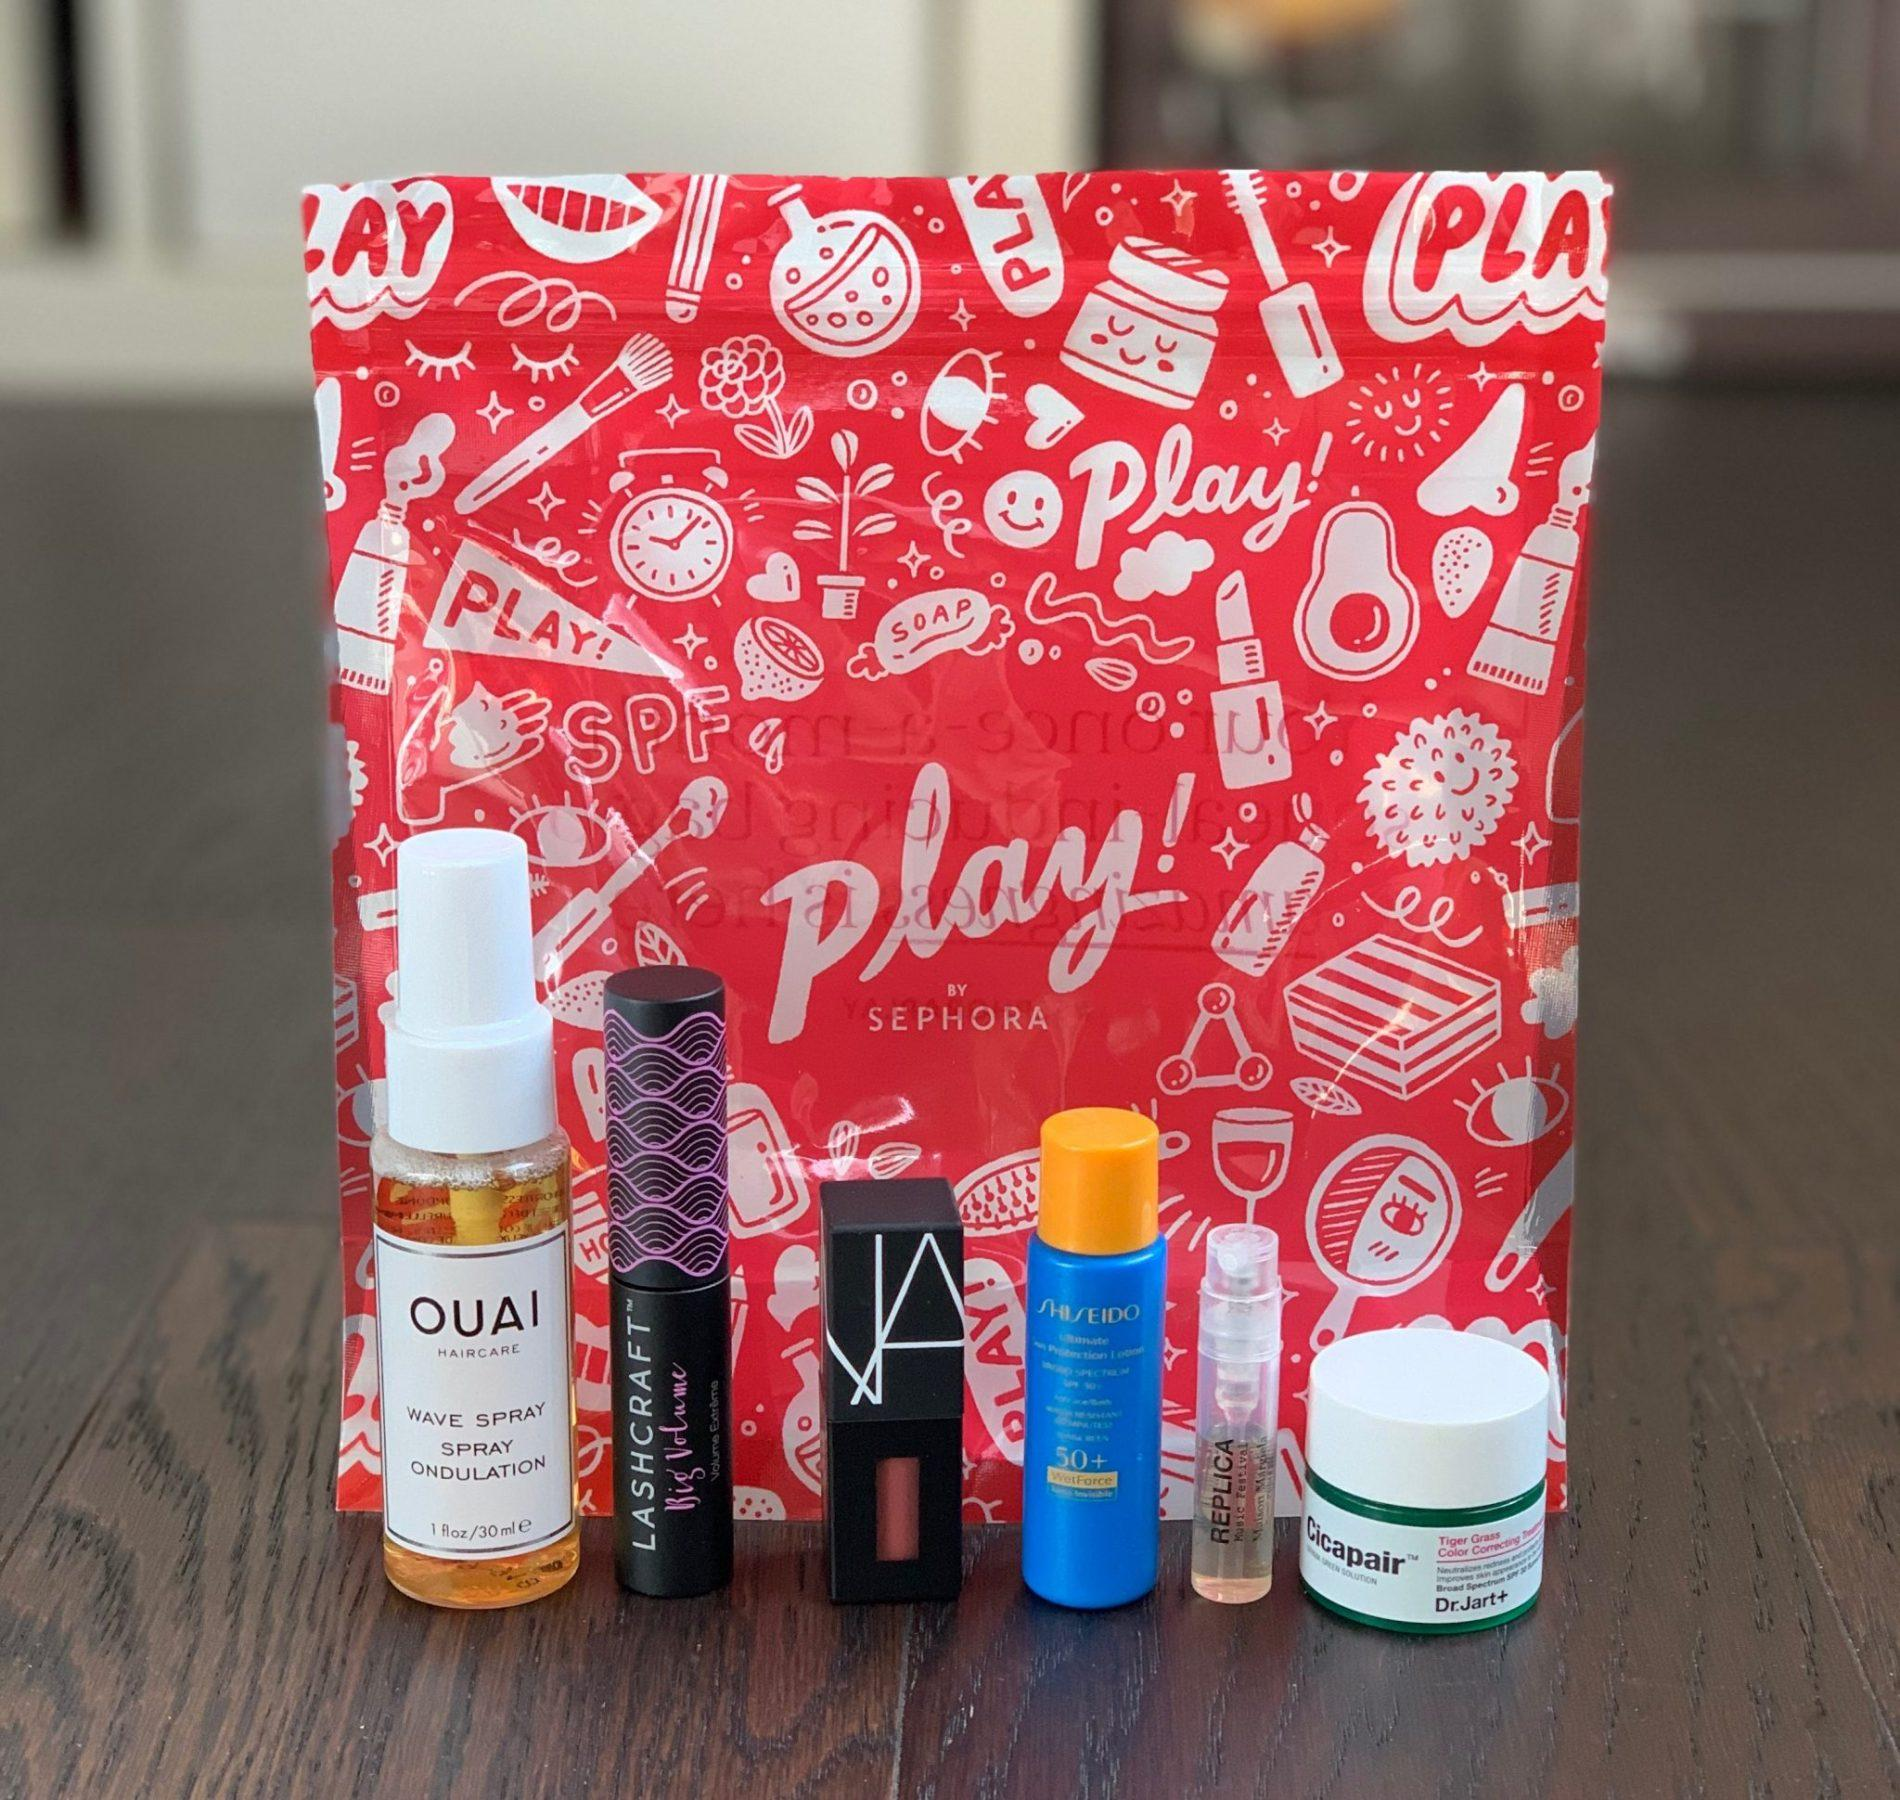 Play! by Sephora Review – March 2019